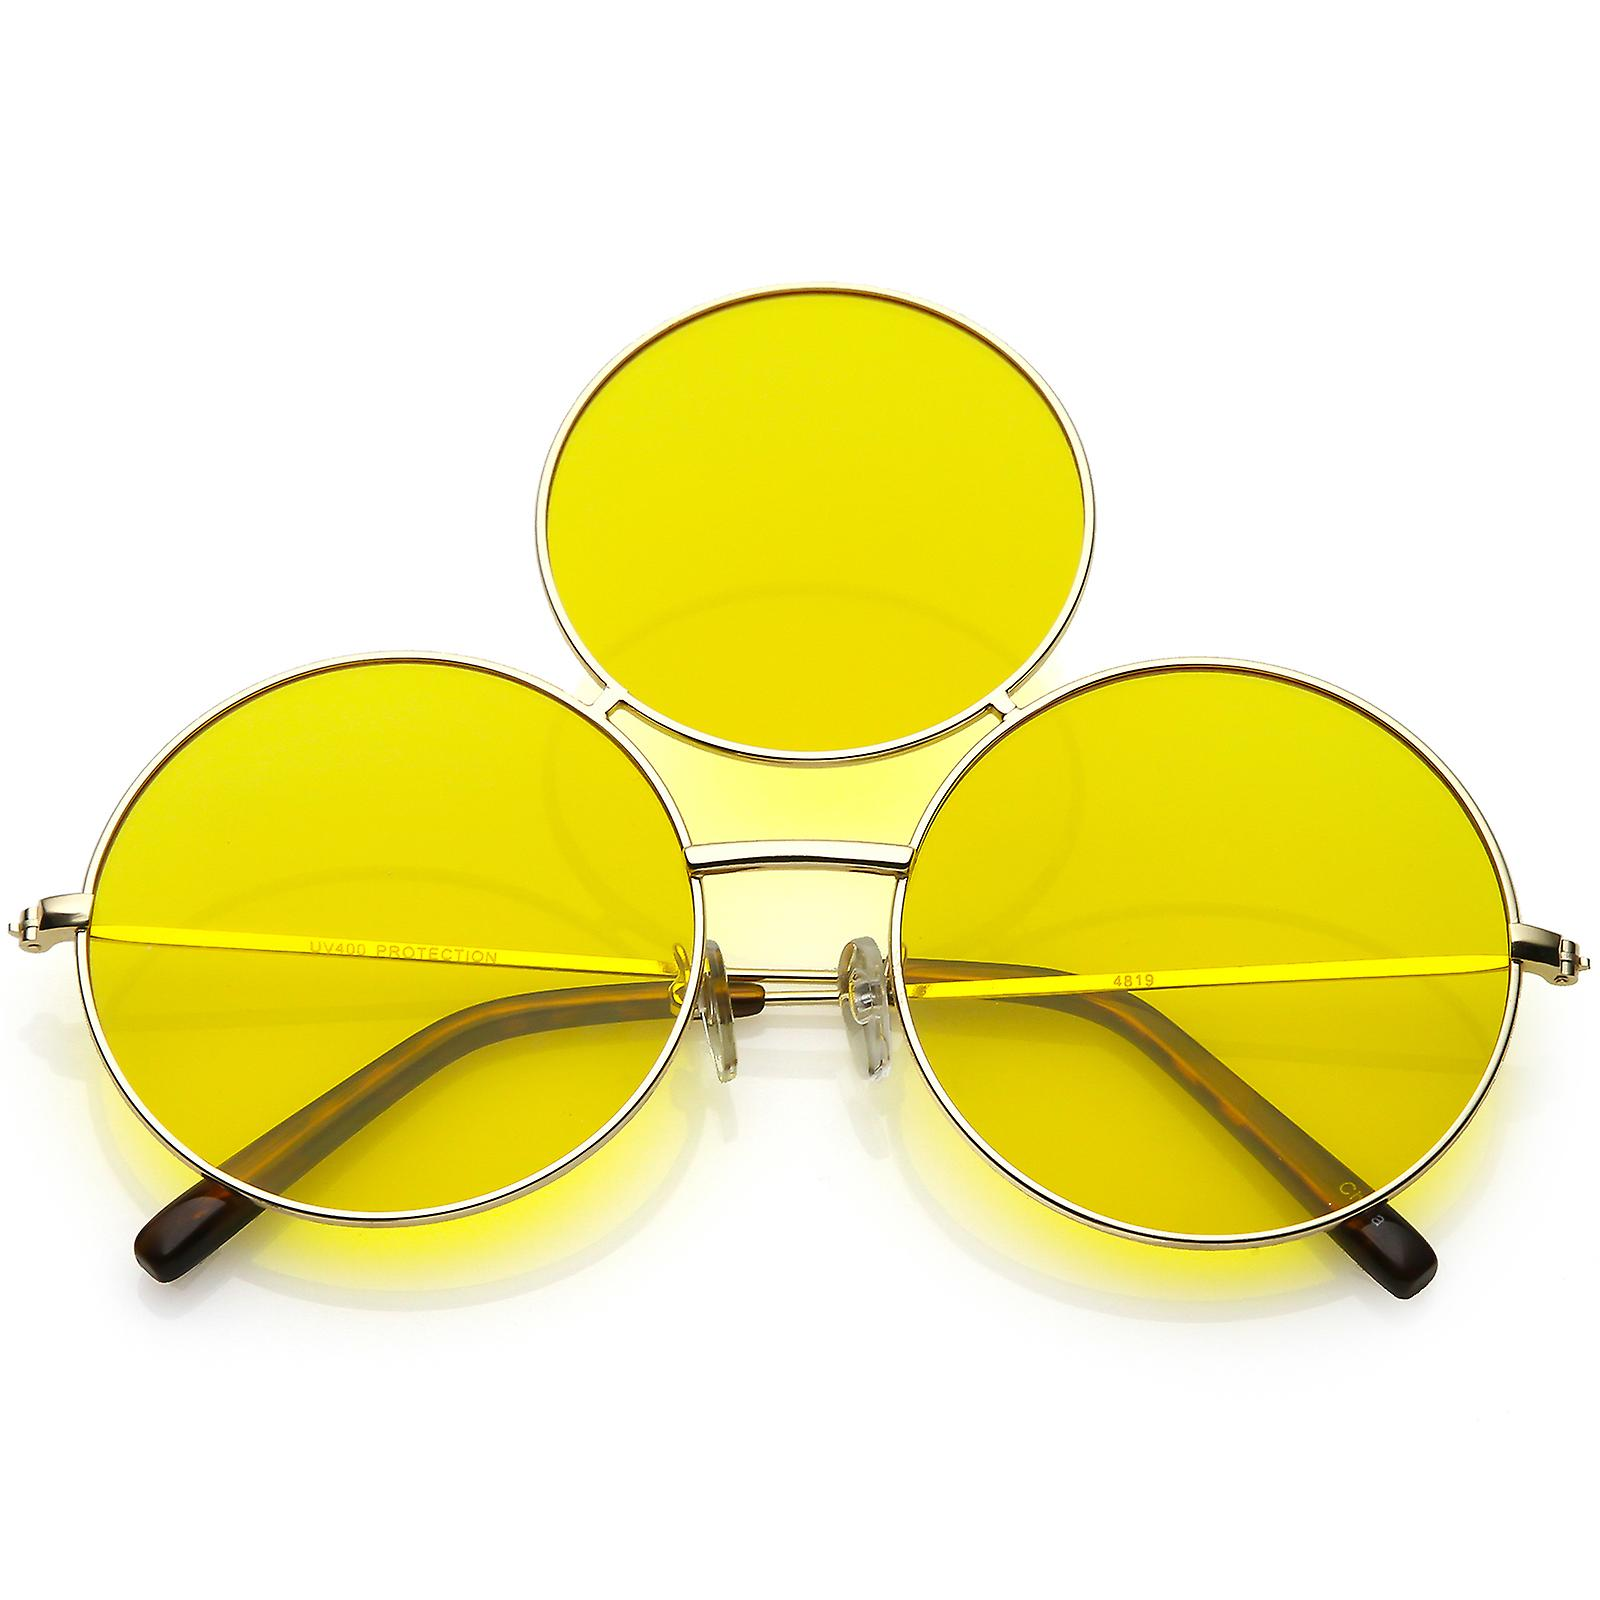 c420bf991d Oversize Circle Third Eye Sunglasses Slim Arms 56mm